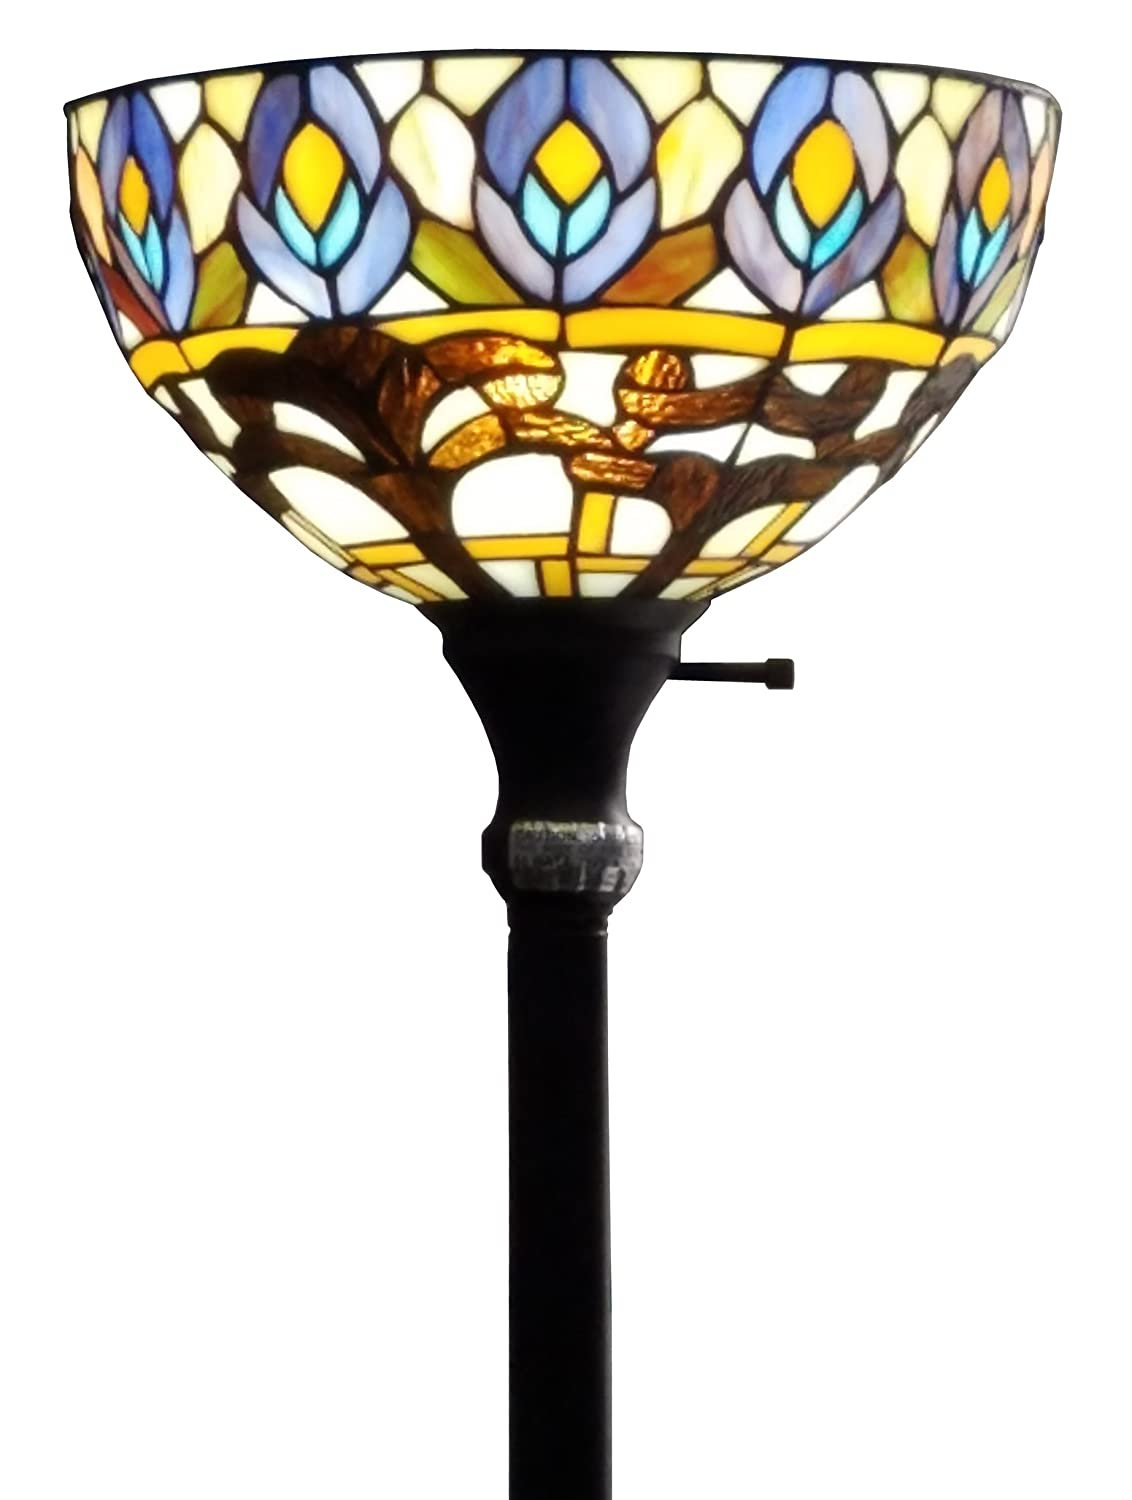 Amora Lighting AM1086FL12 Tiffany Style Peacock Torchiere Floor Lamp, 72 H